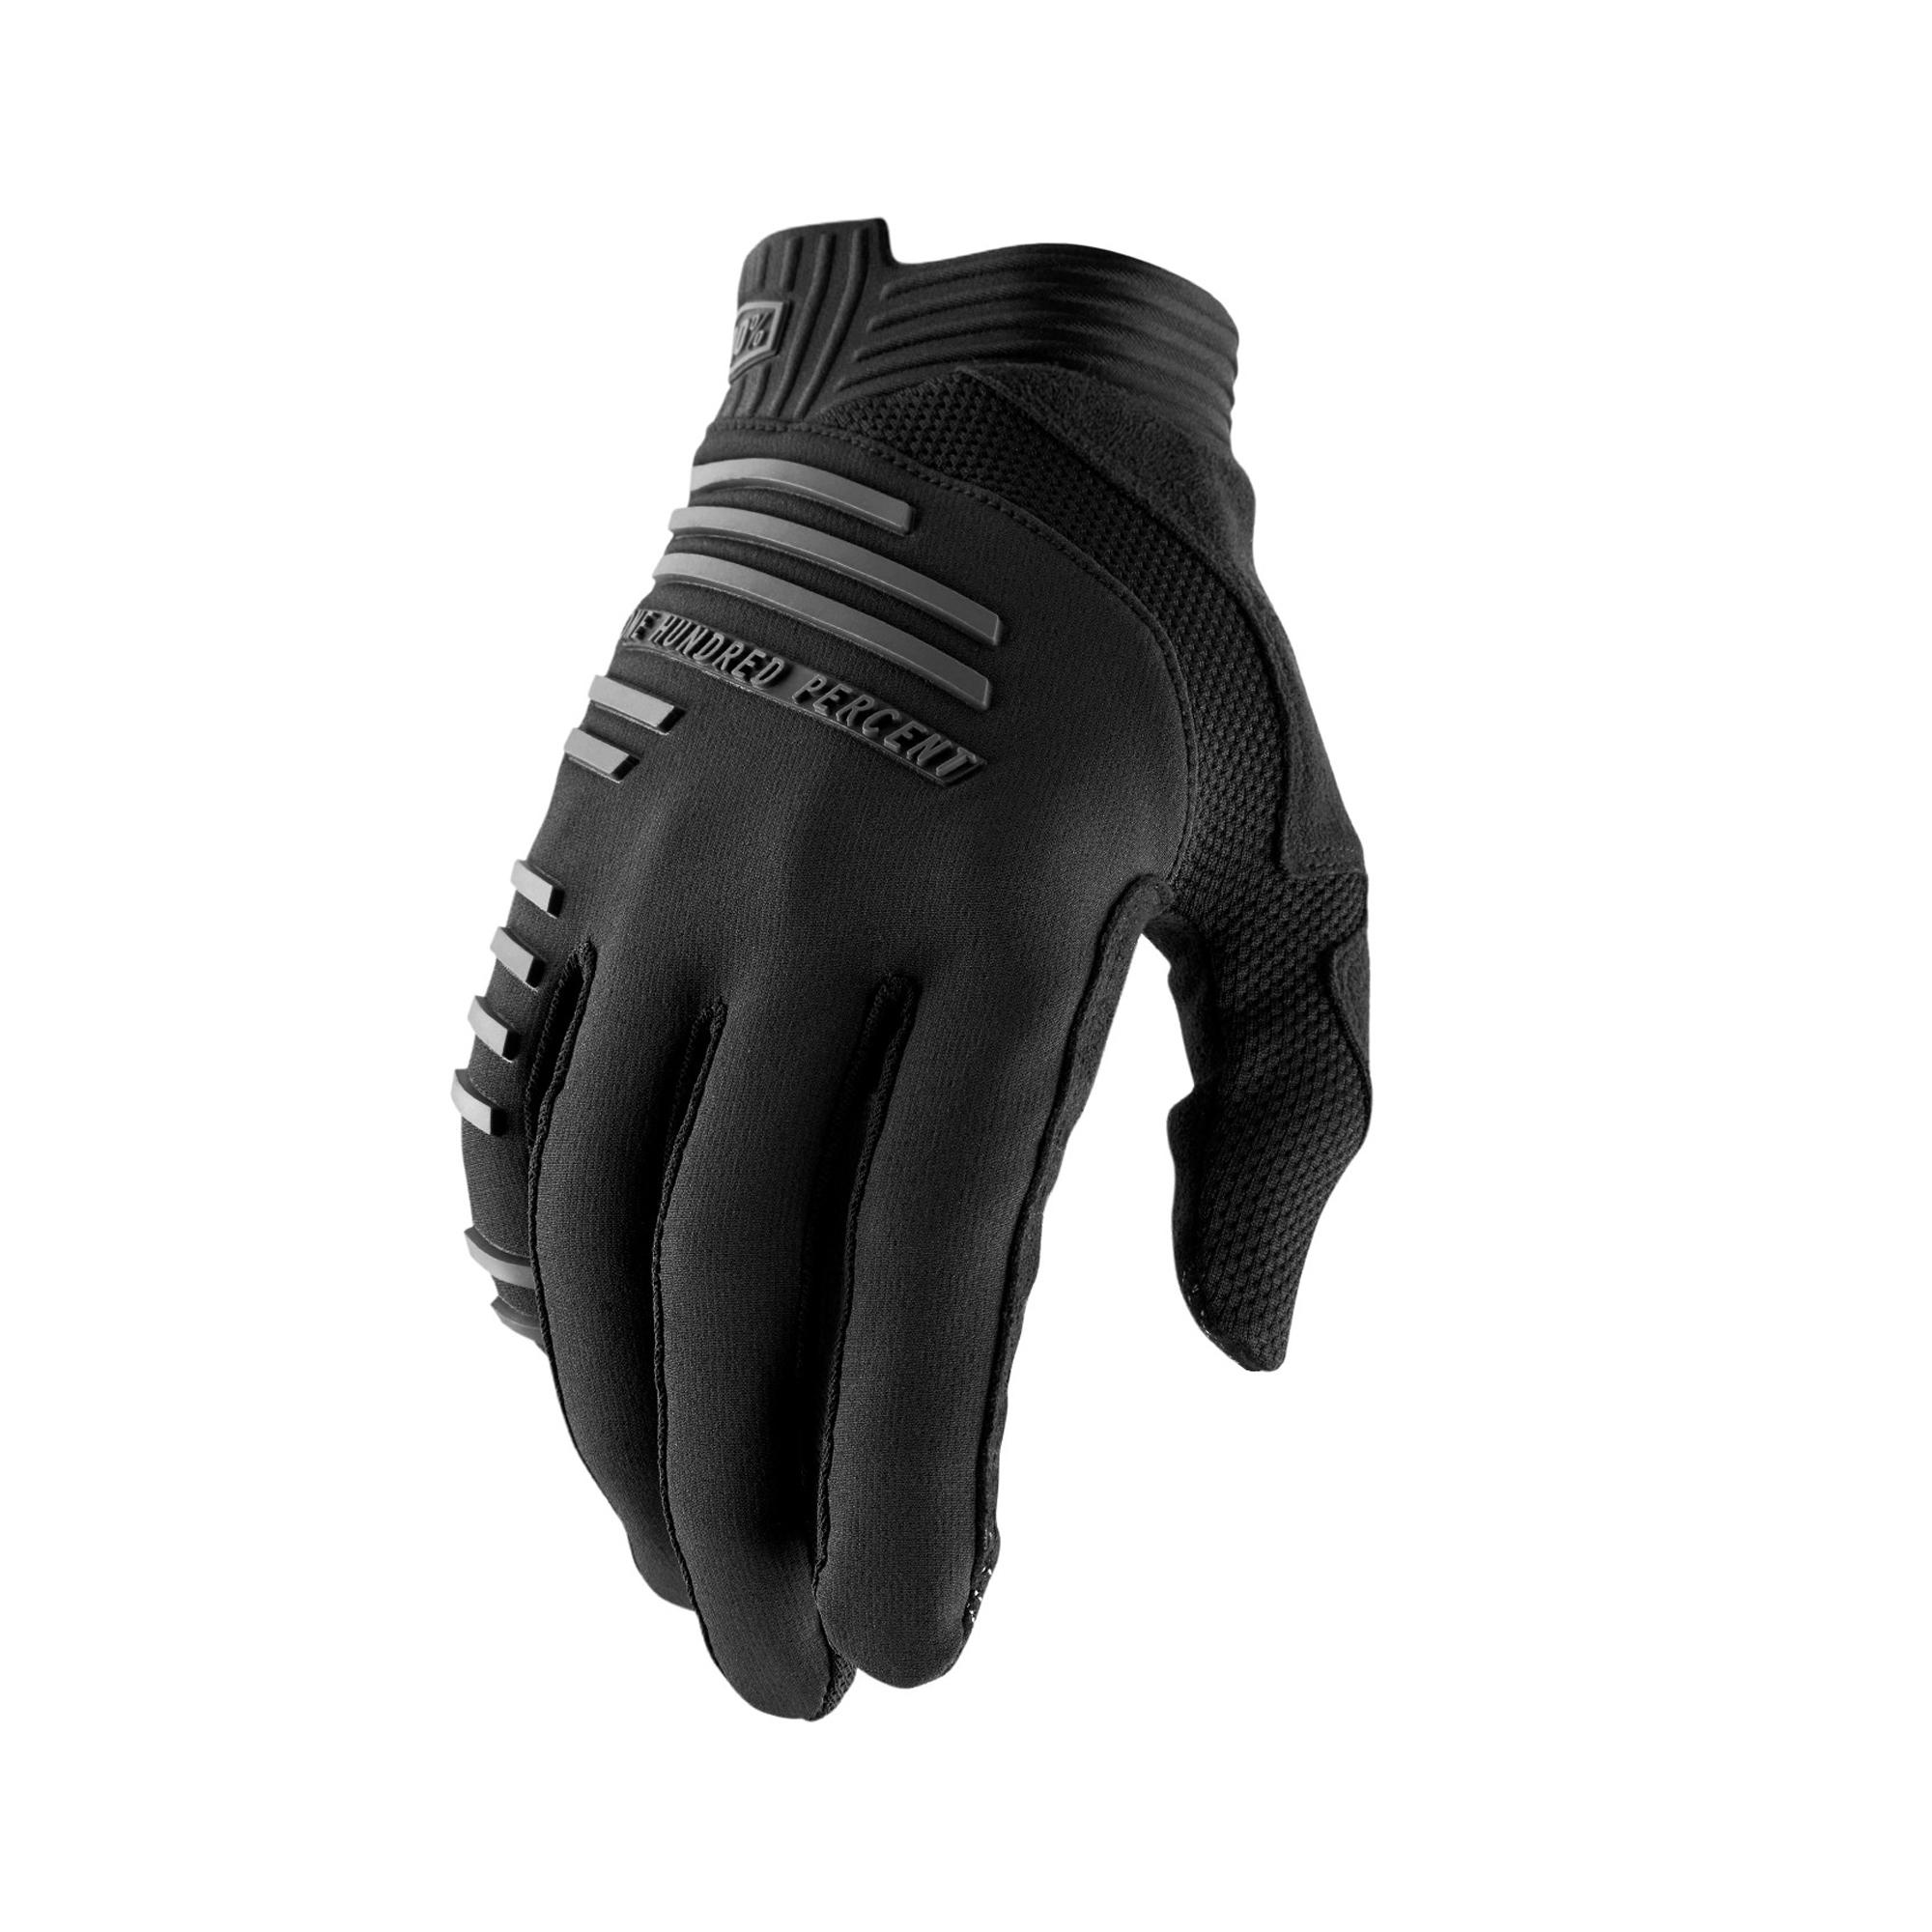 R-CORE Glove Black -